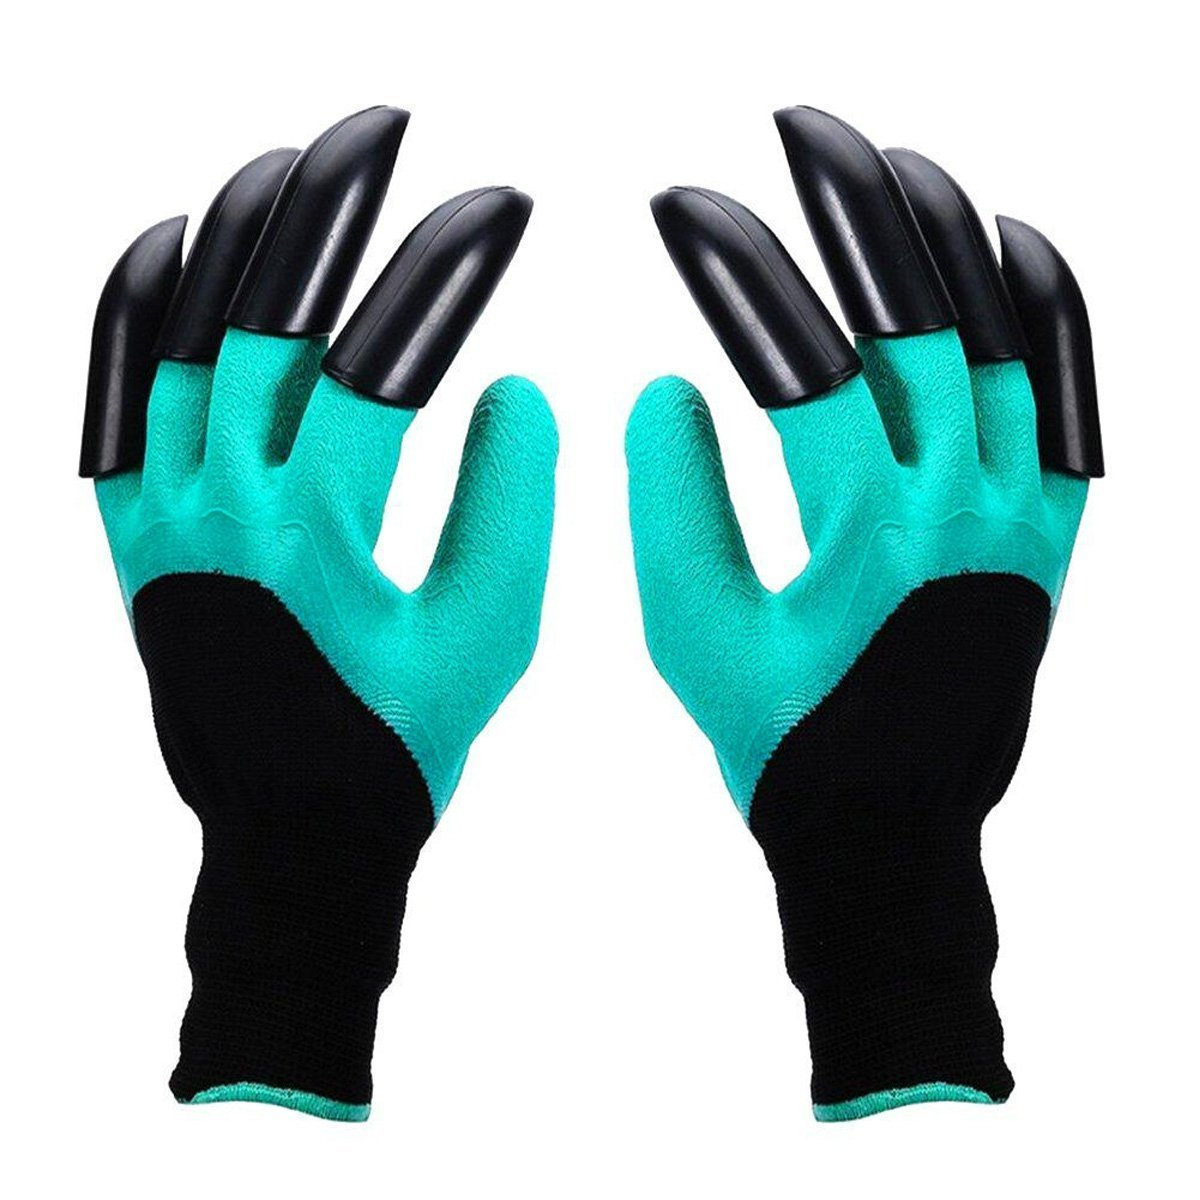 Clawed Gardening Gloves Easy to Dig and Plant, Waterproof Garden Gloves for Women and Men(1 Pair)